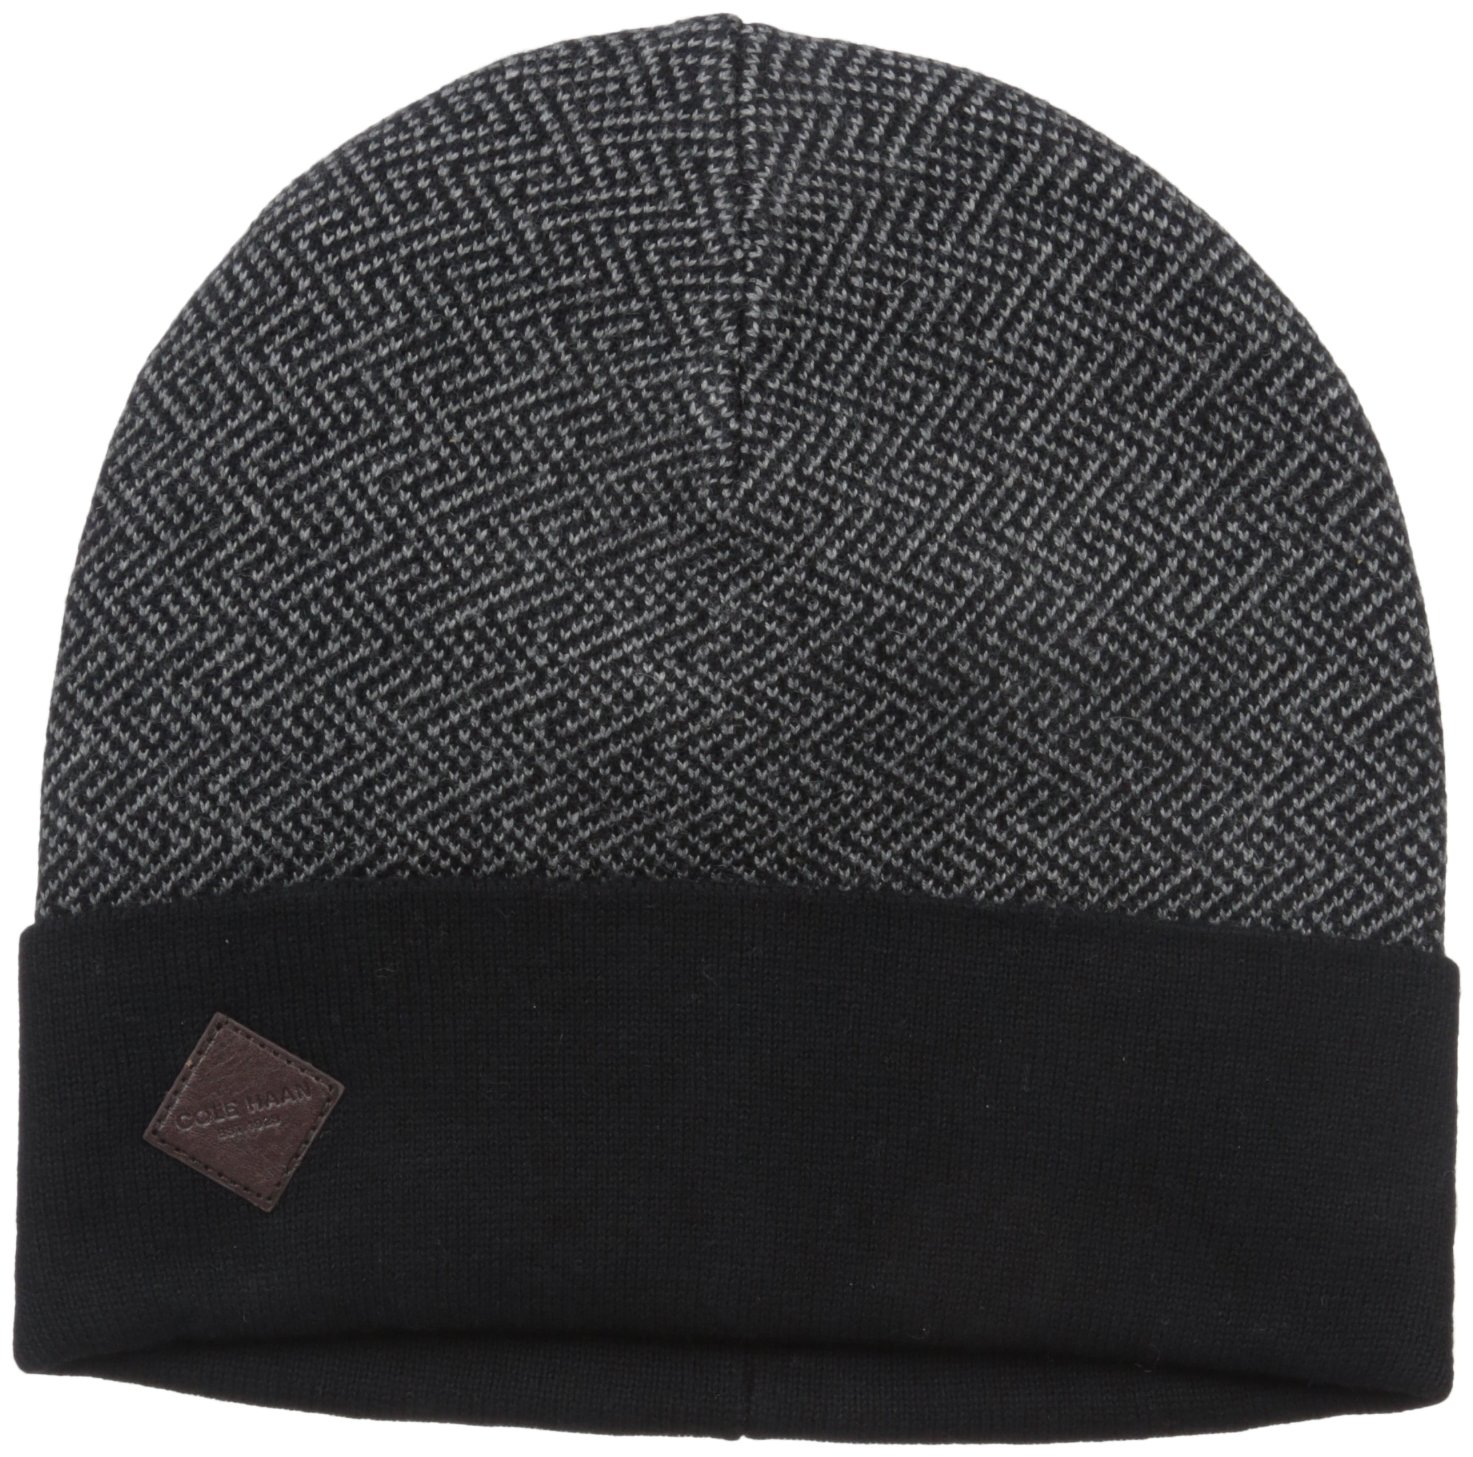 Cole Haan Men's Fine Gauge Pattern Jacquard Knit Cuff Hat, Black/Heather Grey, One Size